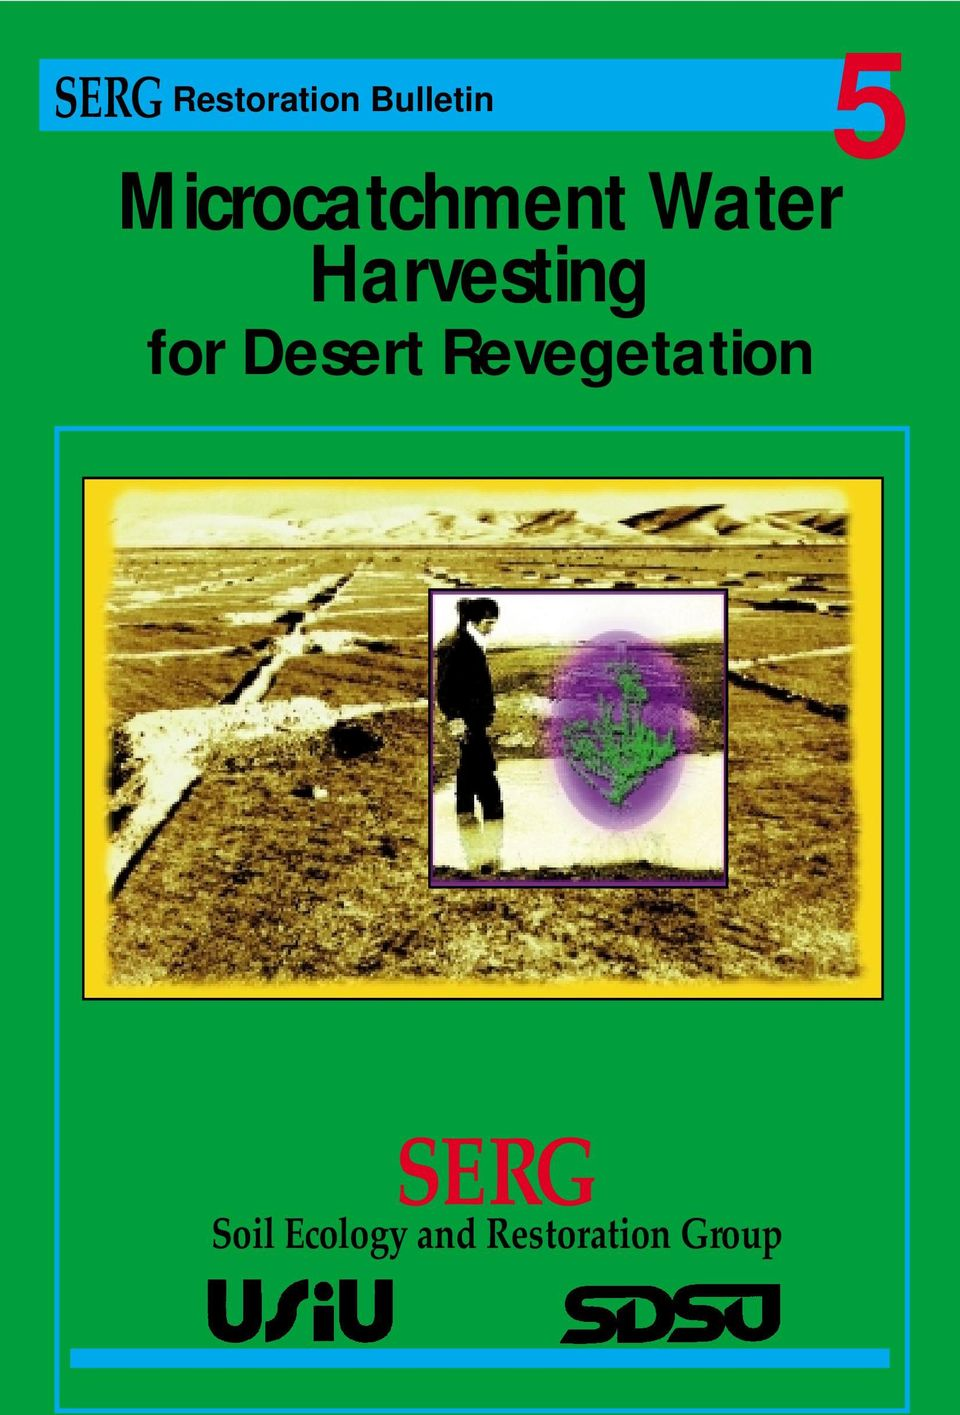 Harvesting for Desert